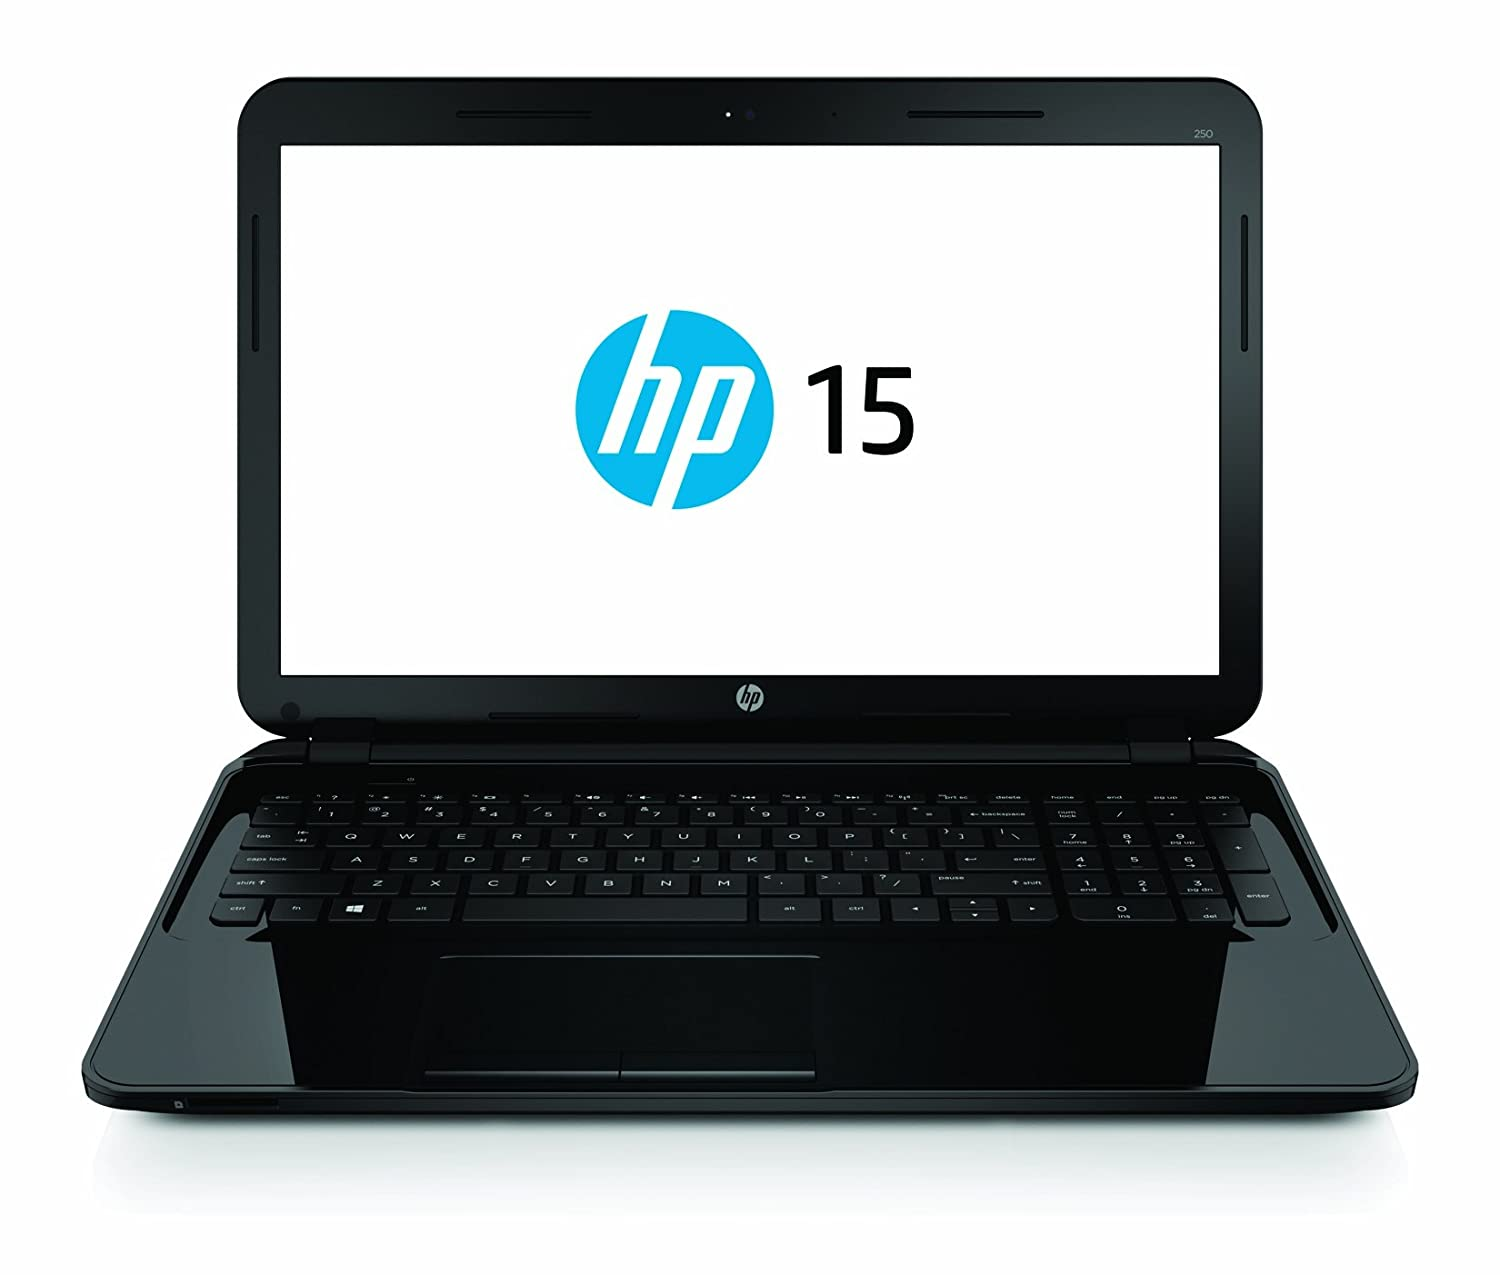 HP 15-d030nr 15.6-Inch Laptop